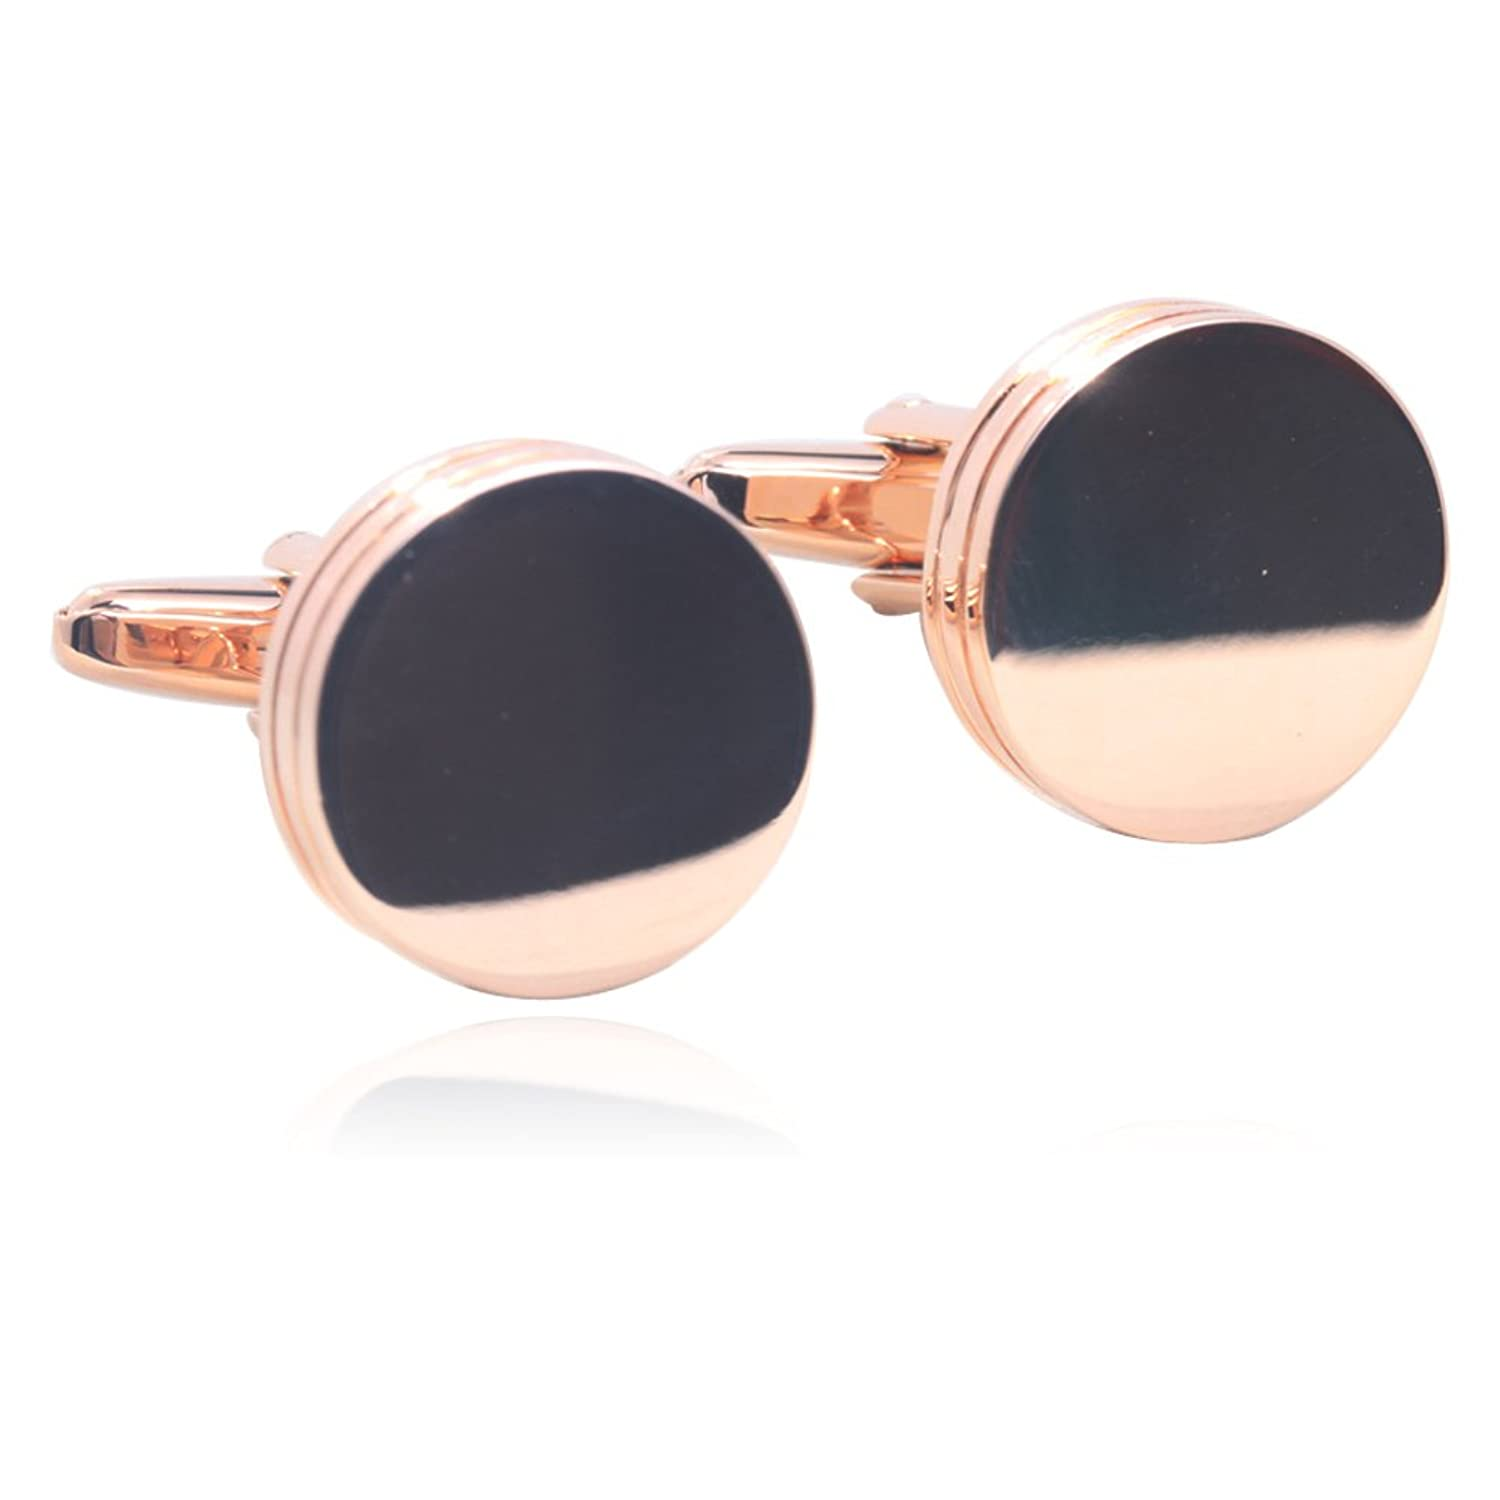 Smooth Round Cufflinks 18K Rose Gold Plated Gift Boxed By Digabi